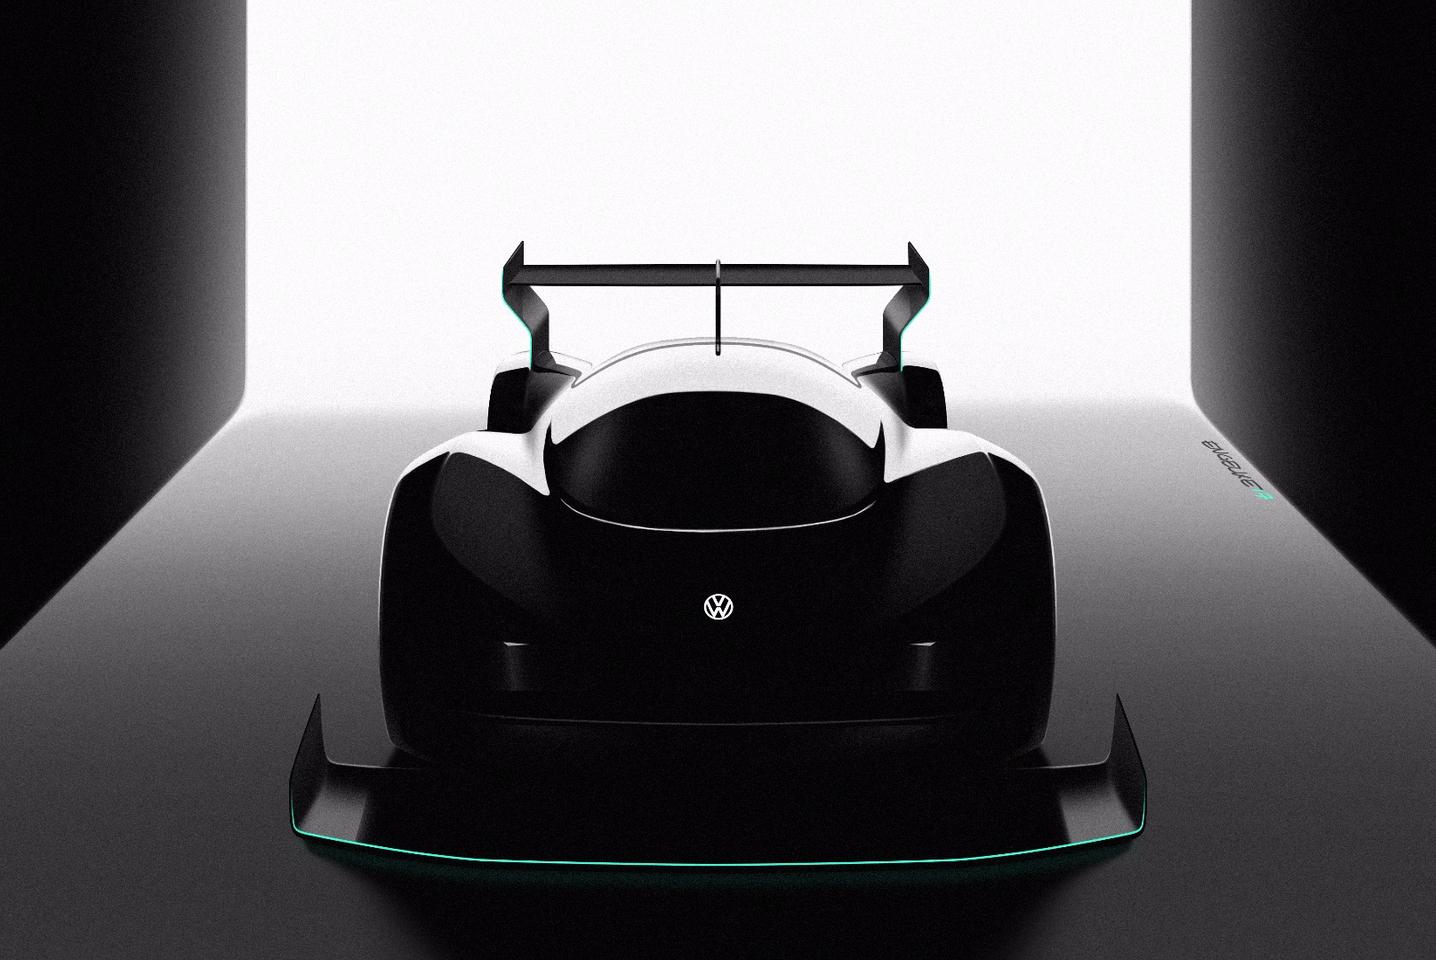 Volkswagen hasn't revealed a whole lot about its new all-electric racing prototype